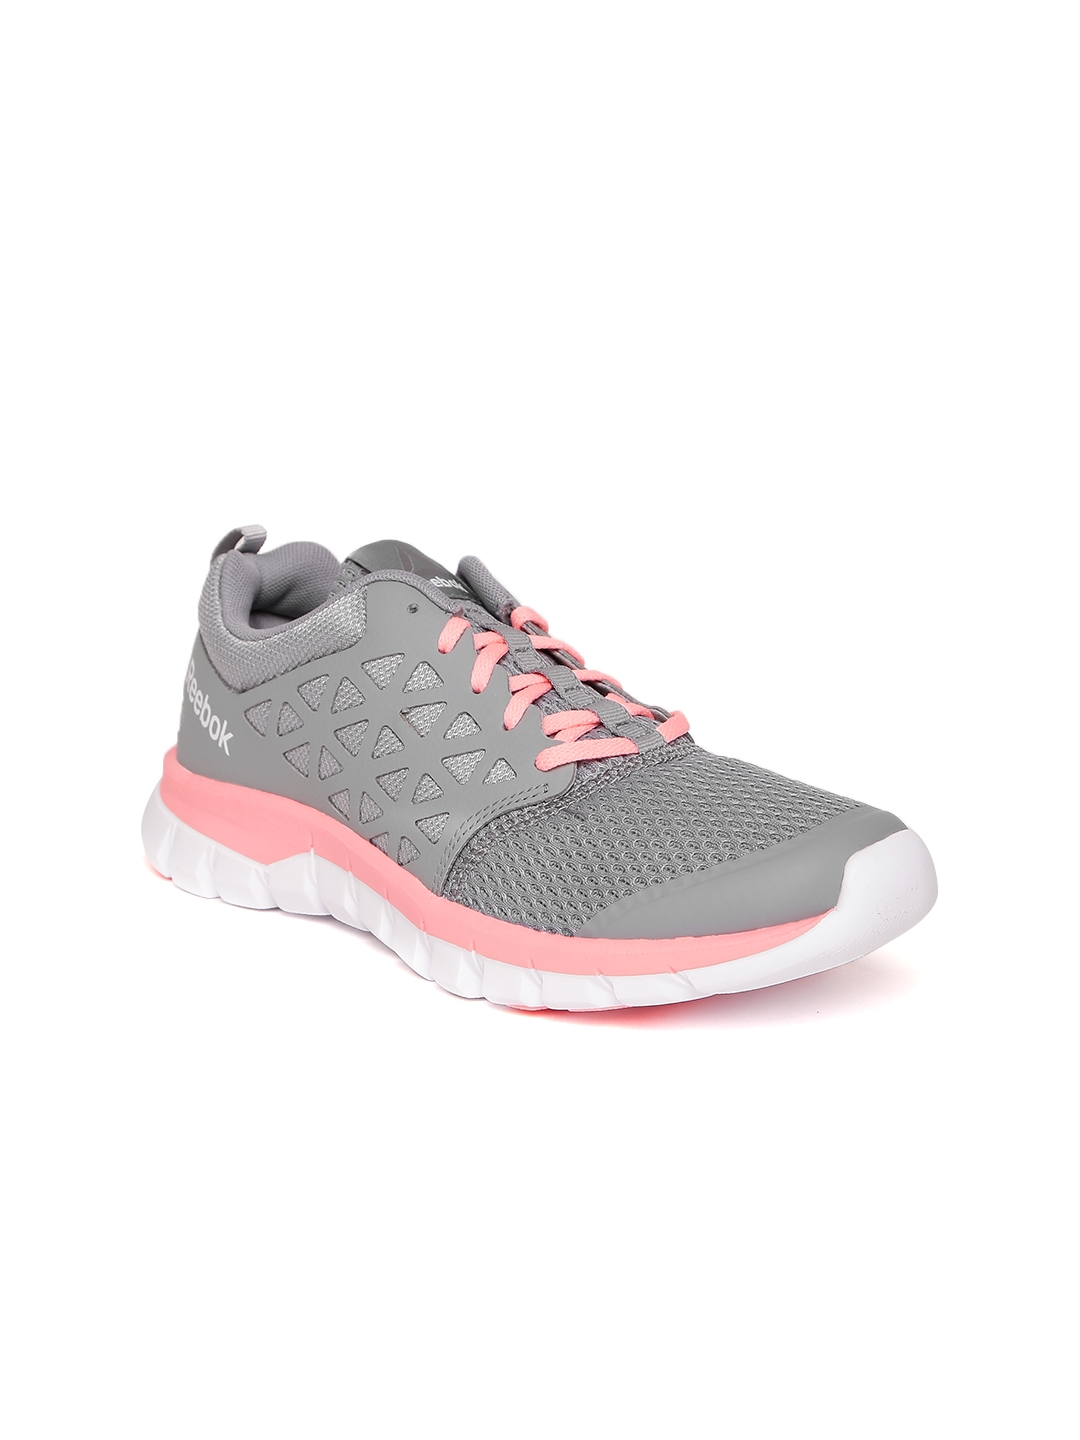 27612c176b34 Buy Reebok Women Grey Sublite XT Cushion 2.0 MT Leather Running ...